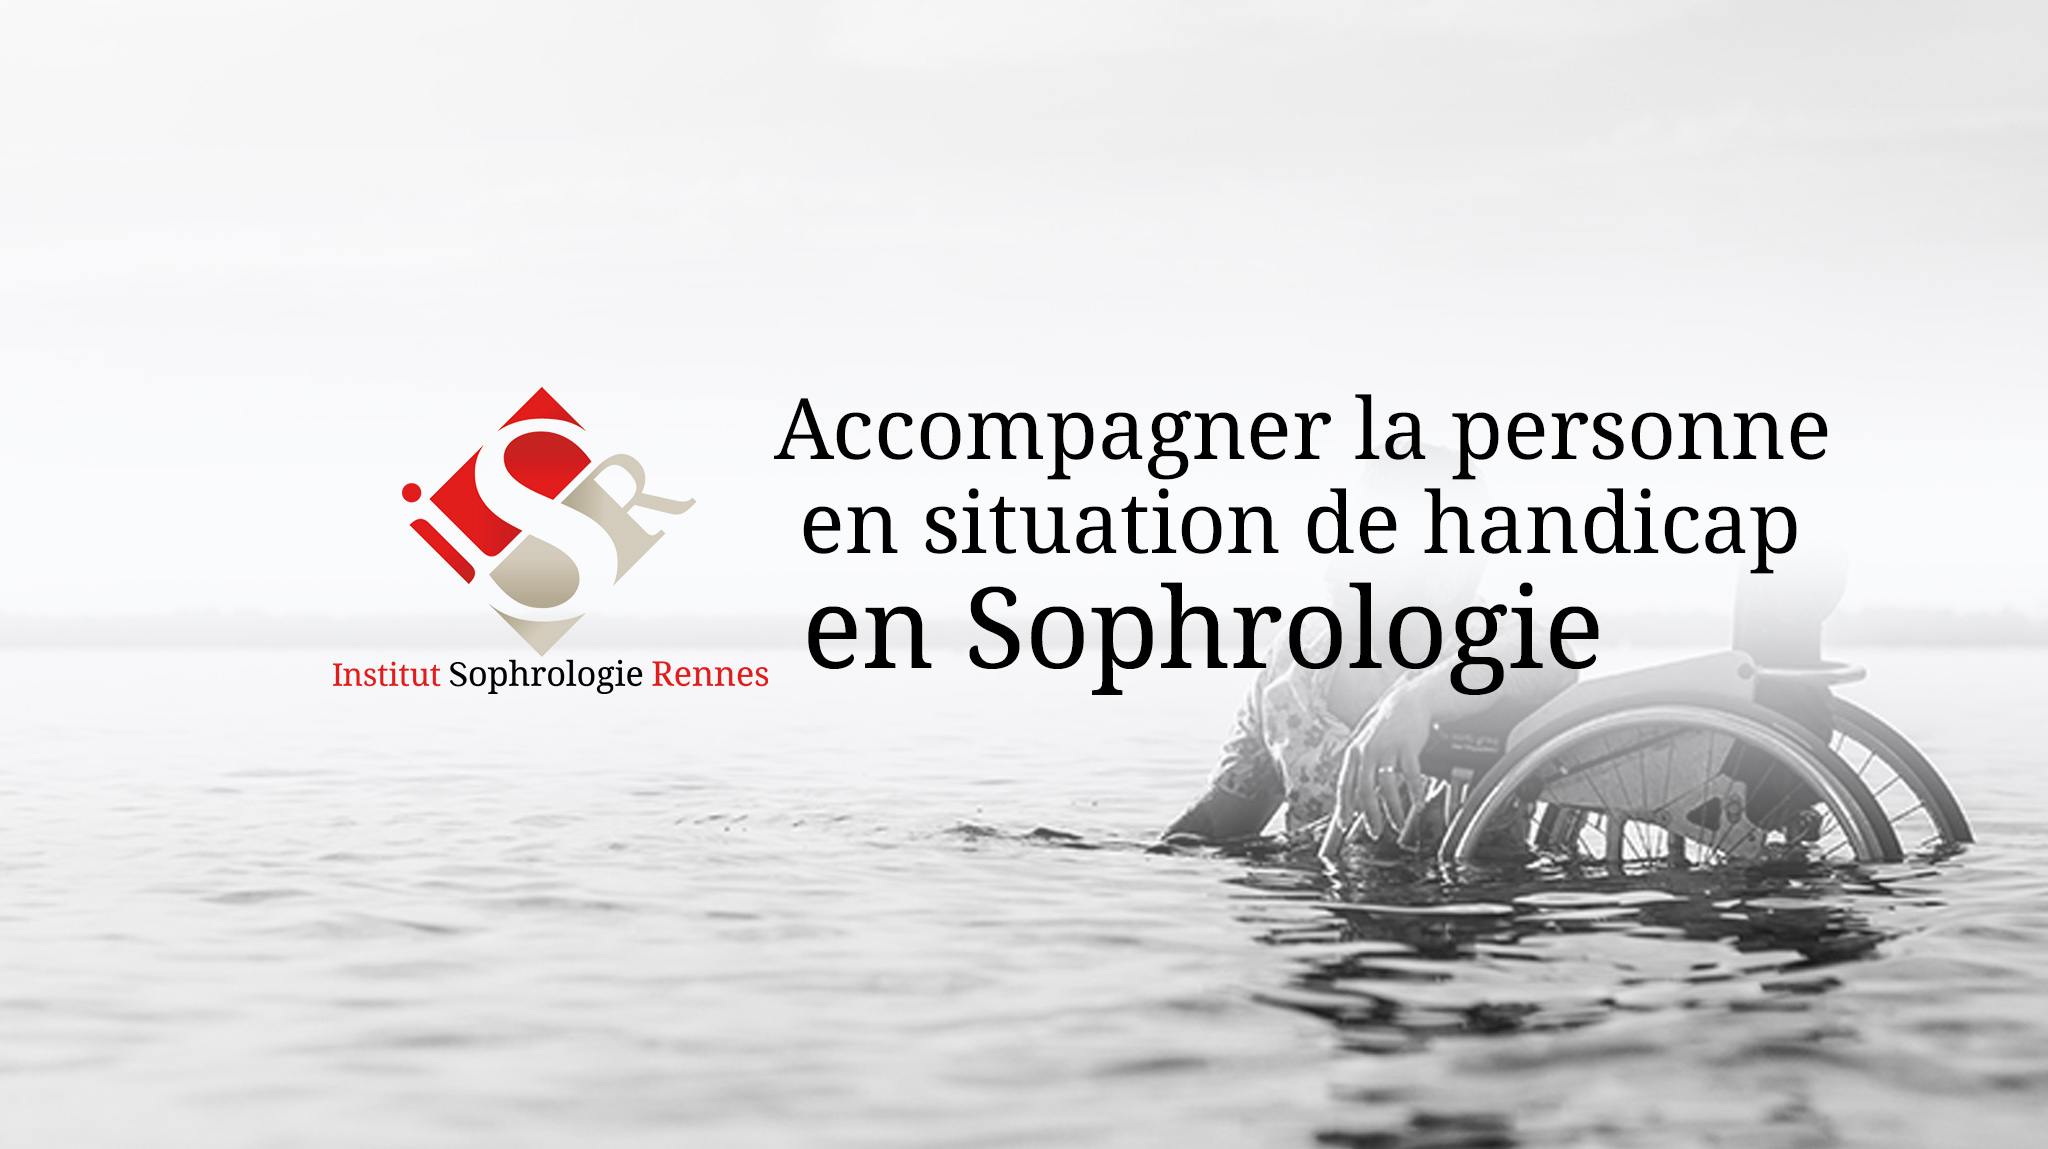 Accompagner Personne Situation Handicap - ISR